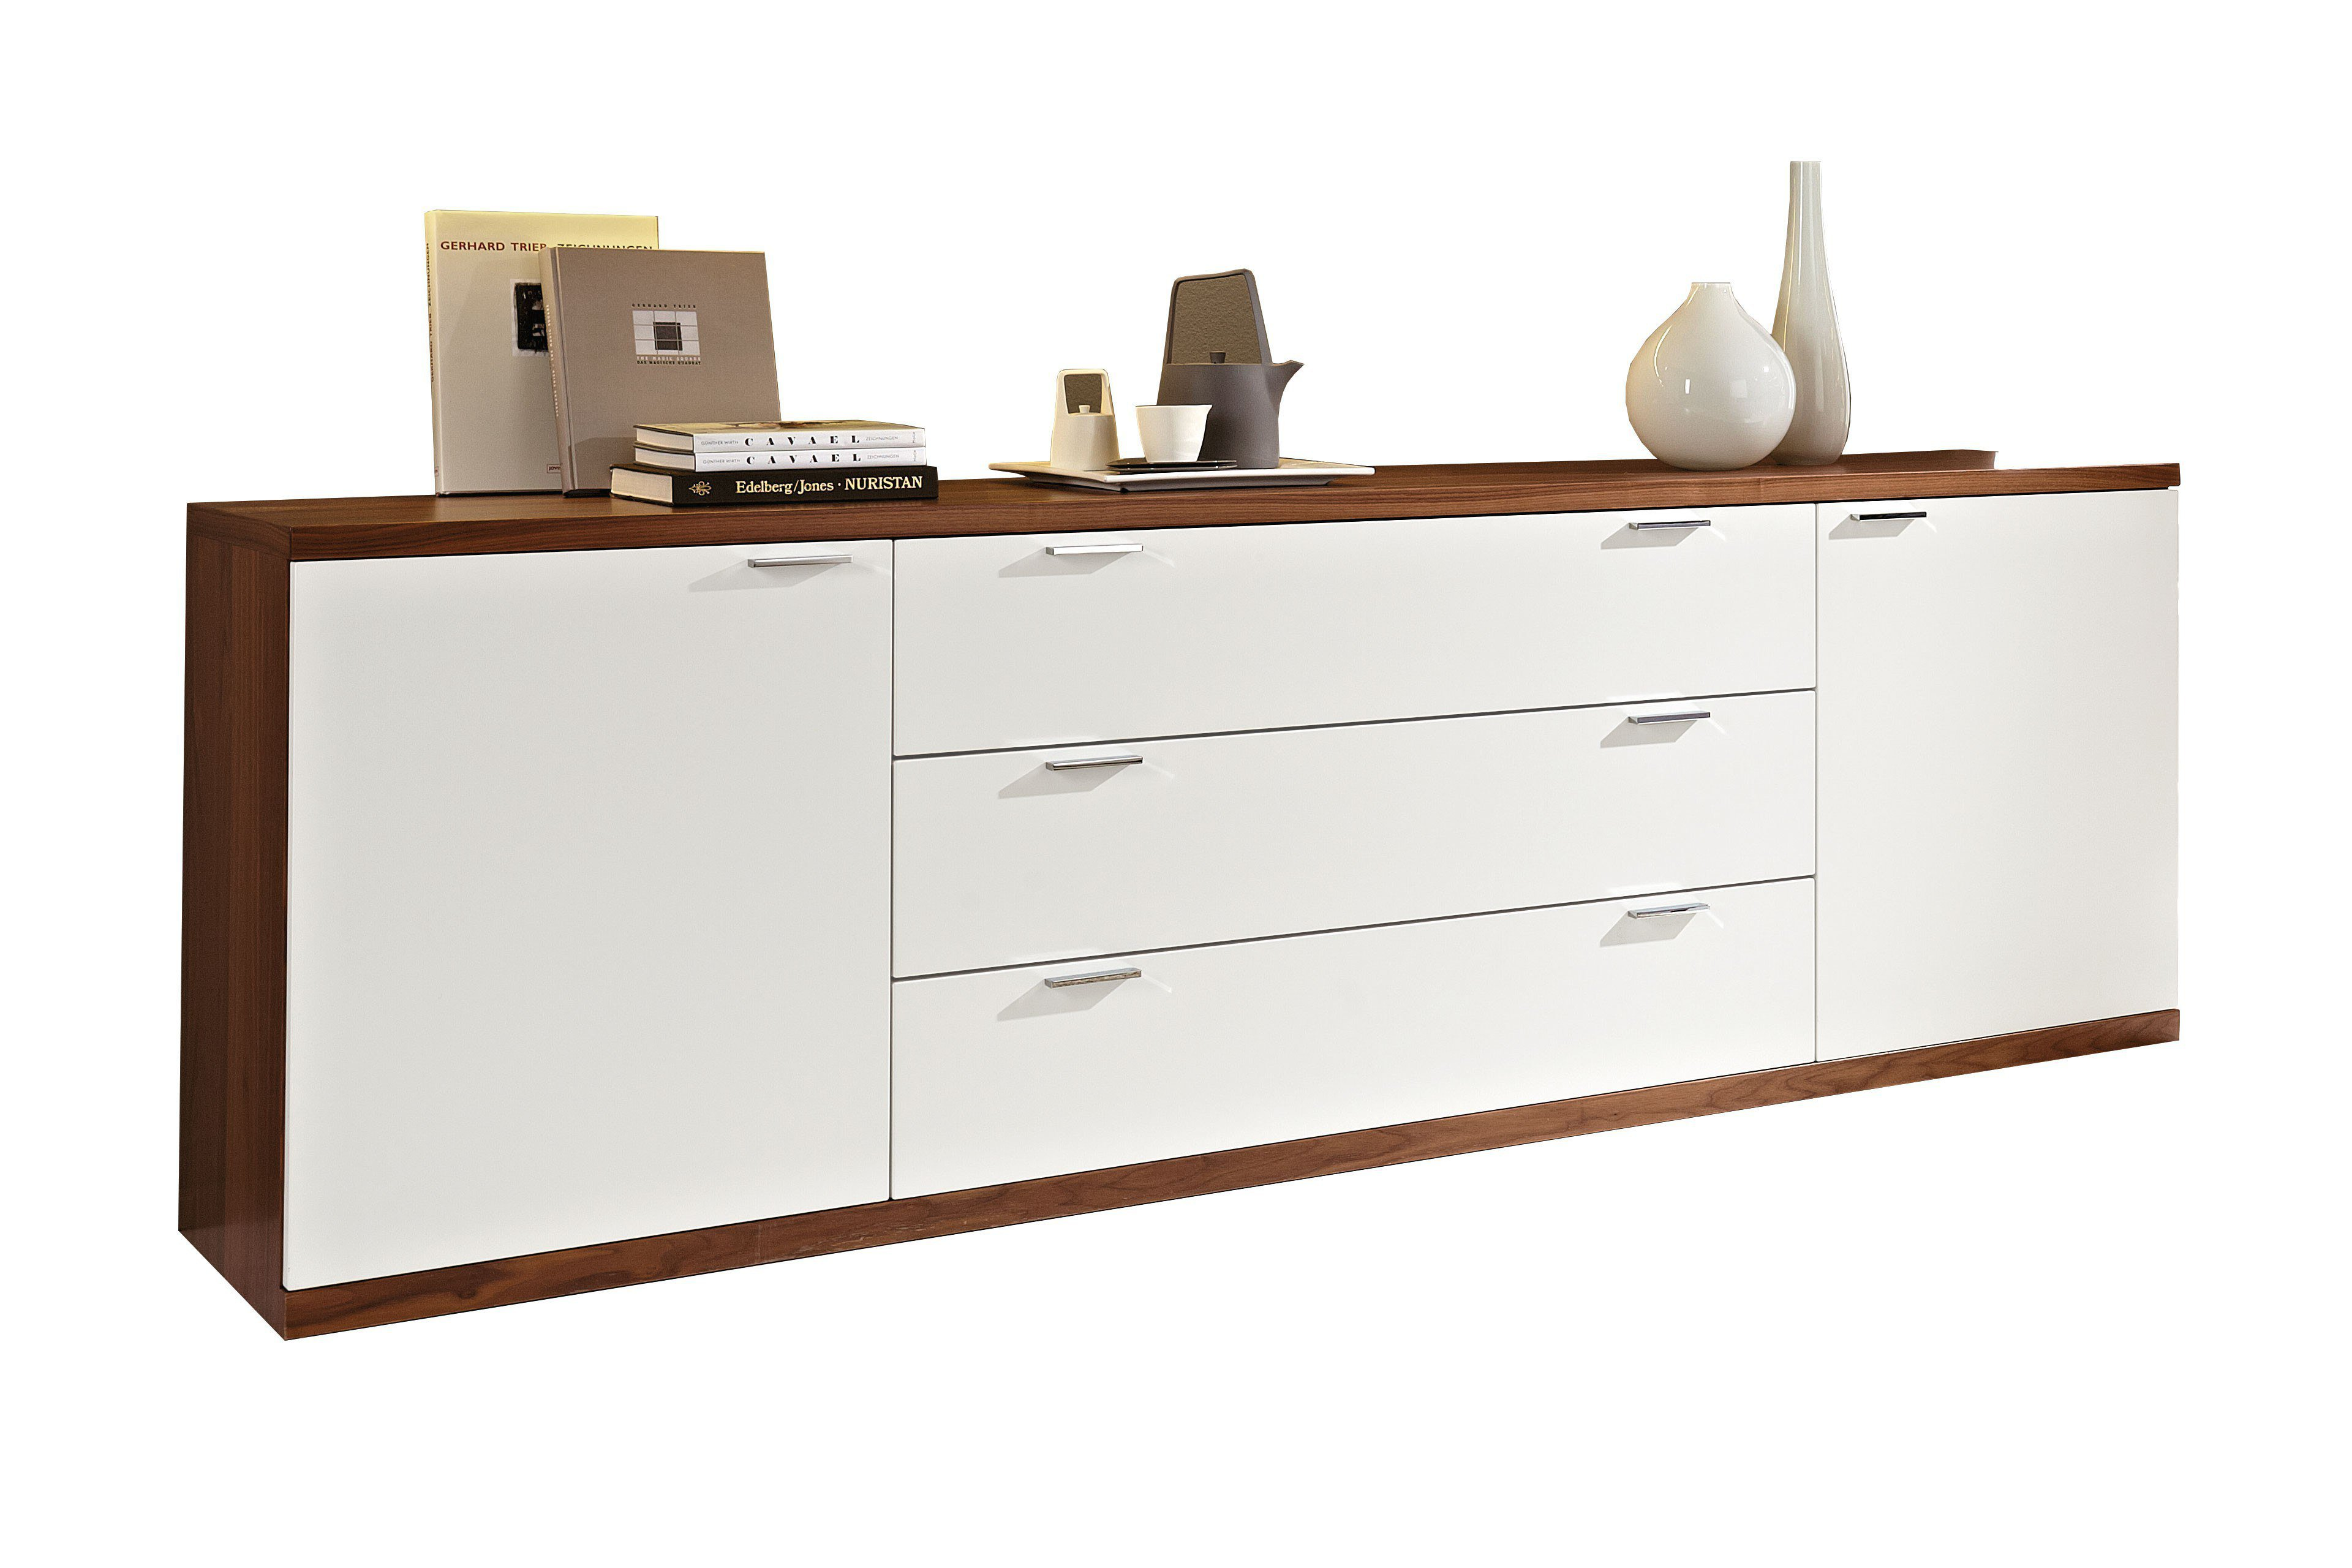 rietberger sideboard siena wei nussbaum m bel letz ihr online shop. Black Bedroom Furniture Sets. Home Design Ideas